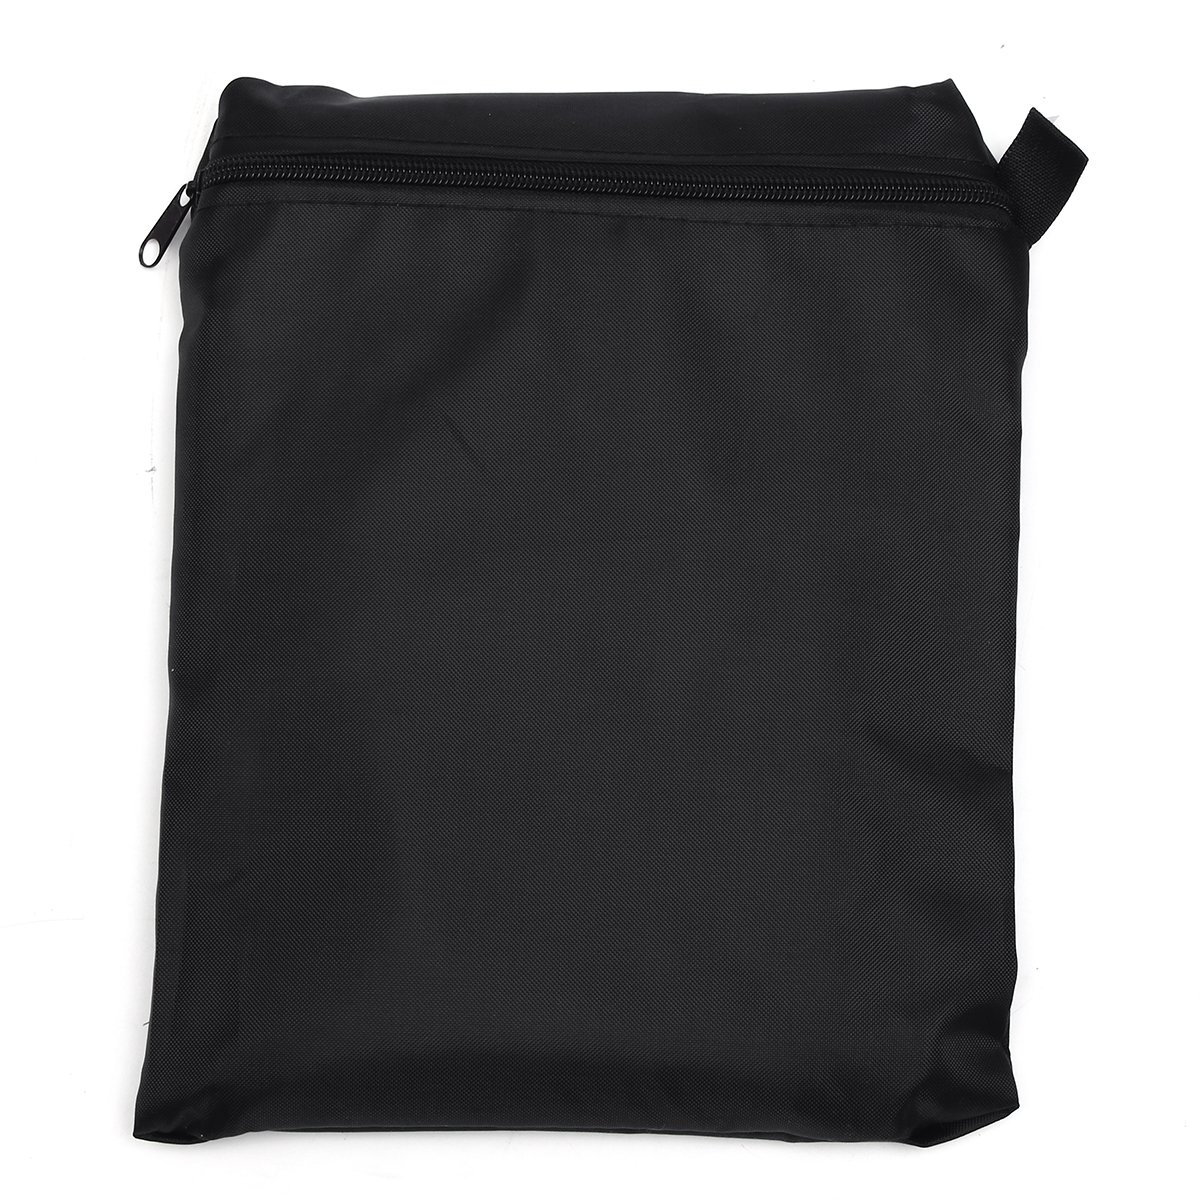 18'' X 32'' X 12'' X 110'' Parasol Umbrella Cover Black Oxford Polyester Rectangular Waterproof Heavy Duty  Outdoor Patio Garden Furniture Protection Protective Cloth Covering